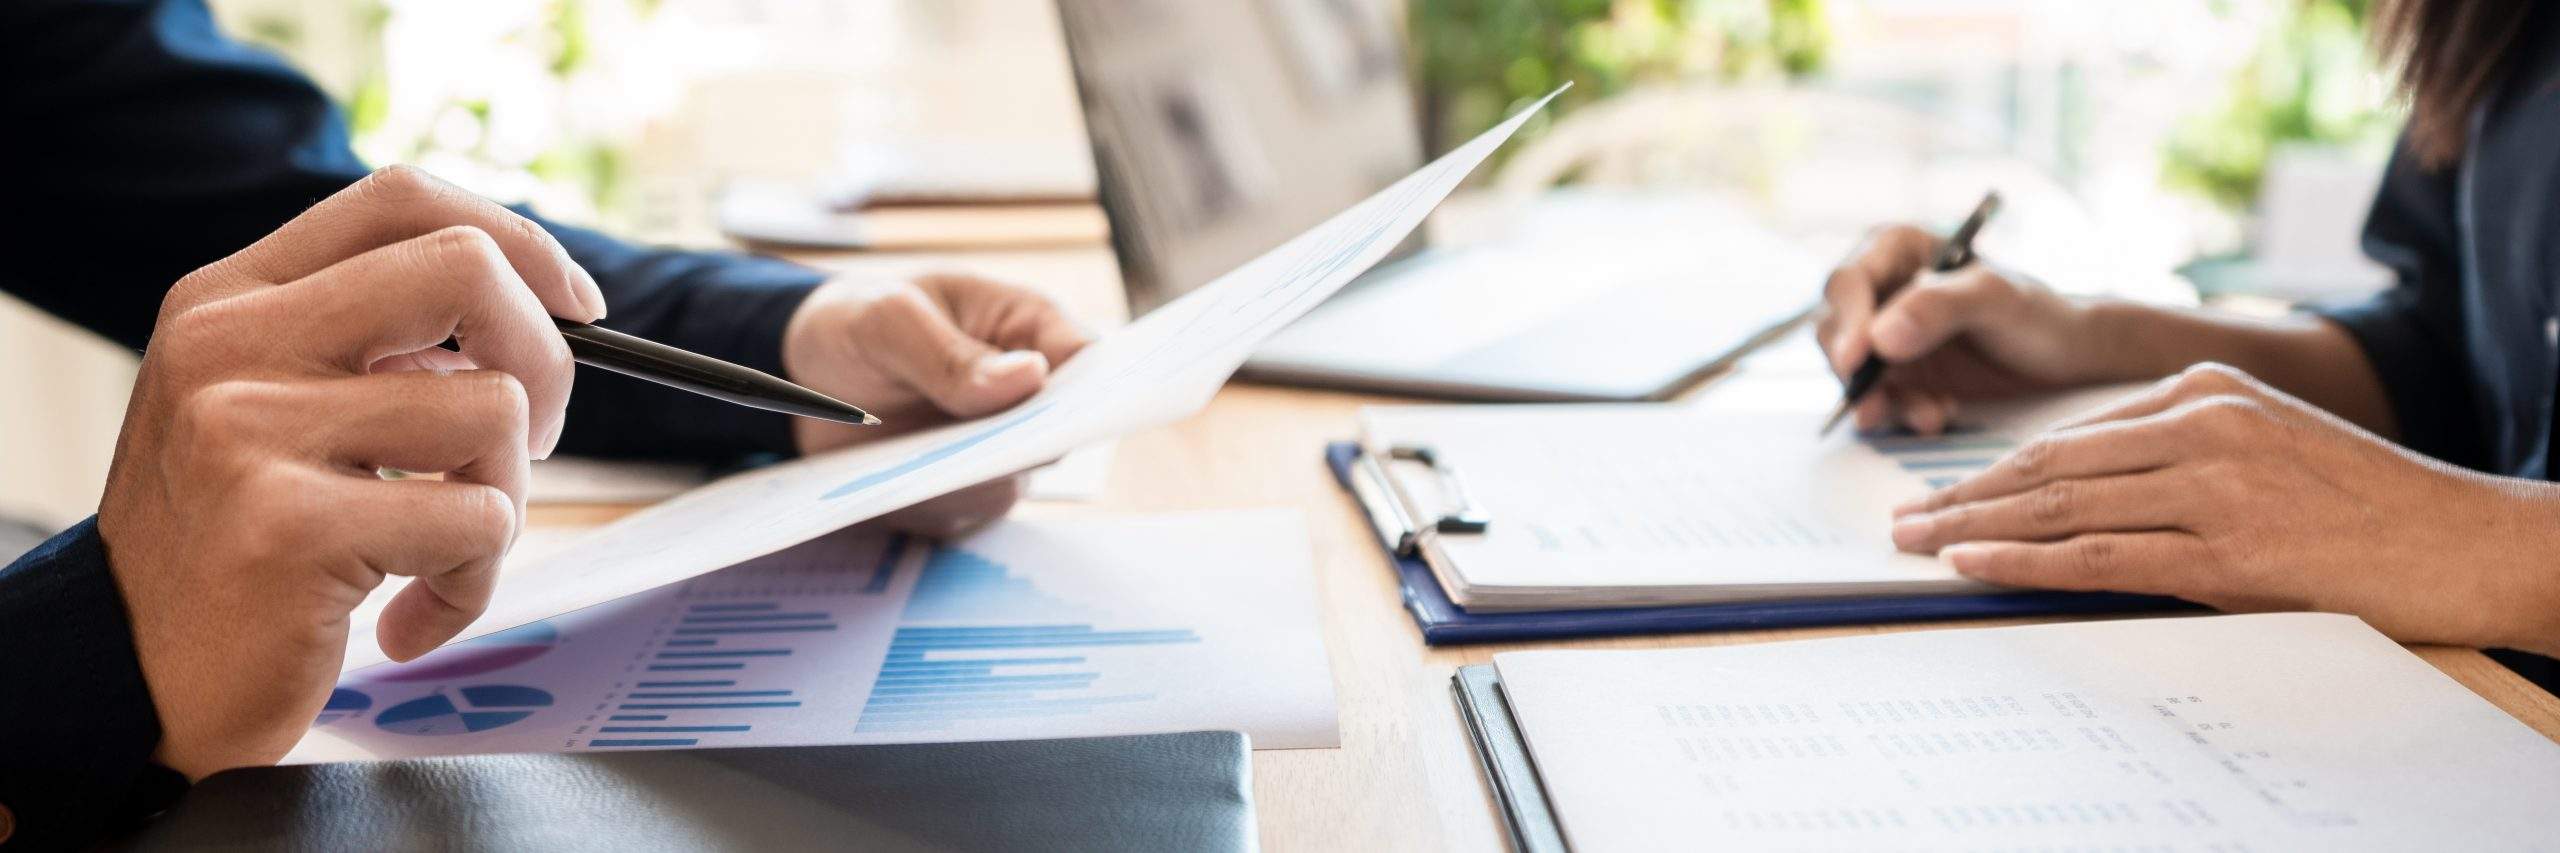 Genesa CPA worker provides accounting services to a Vancouver resident.